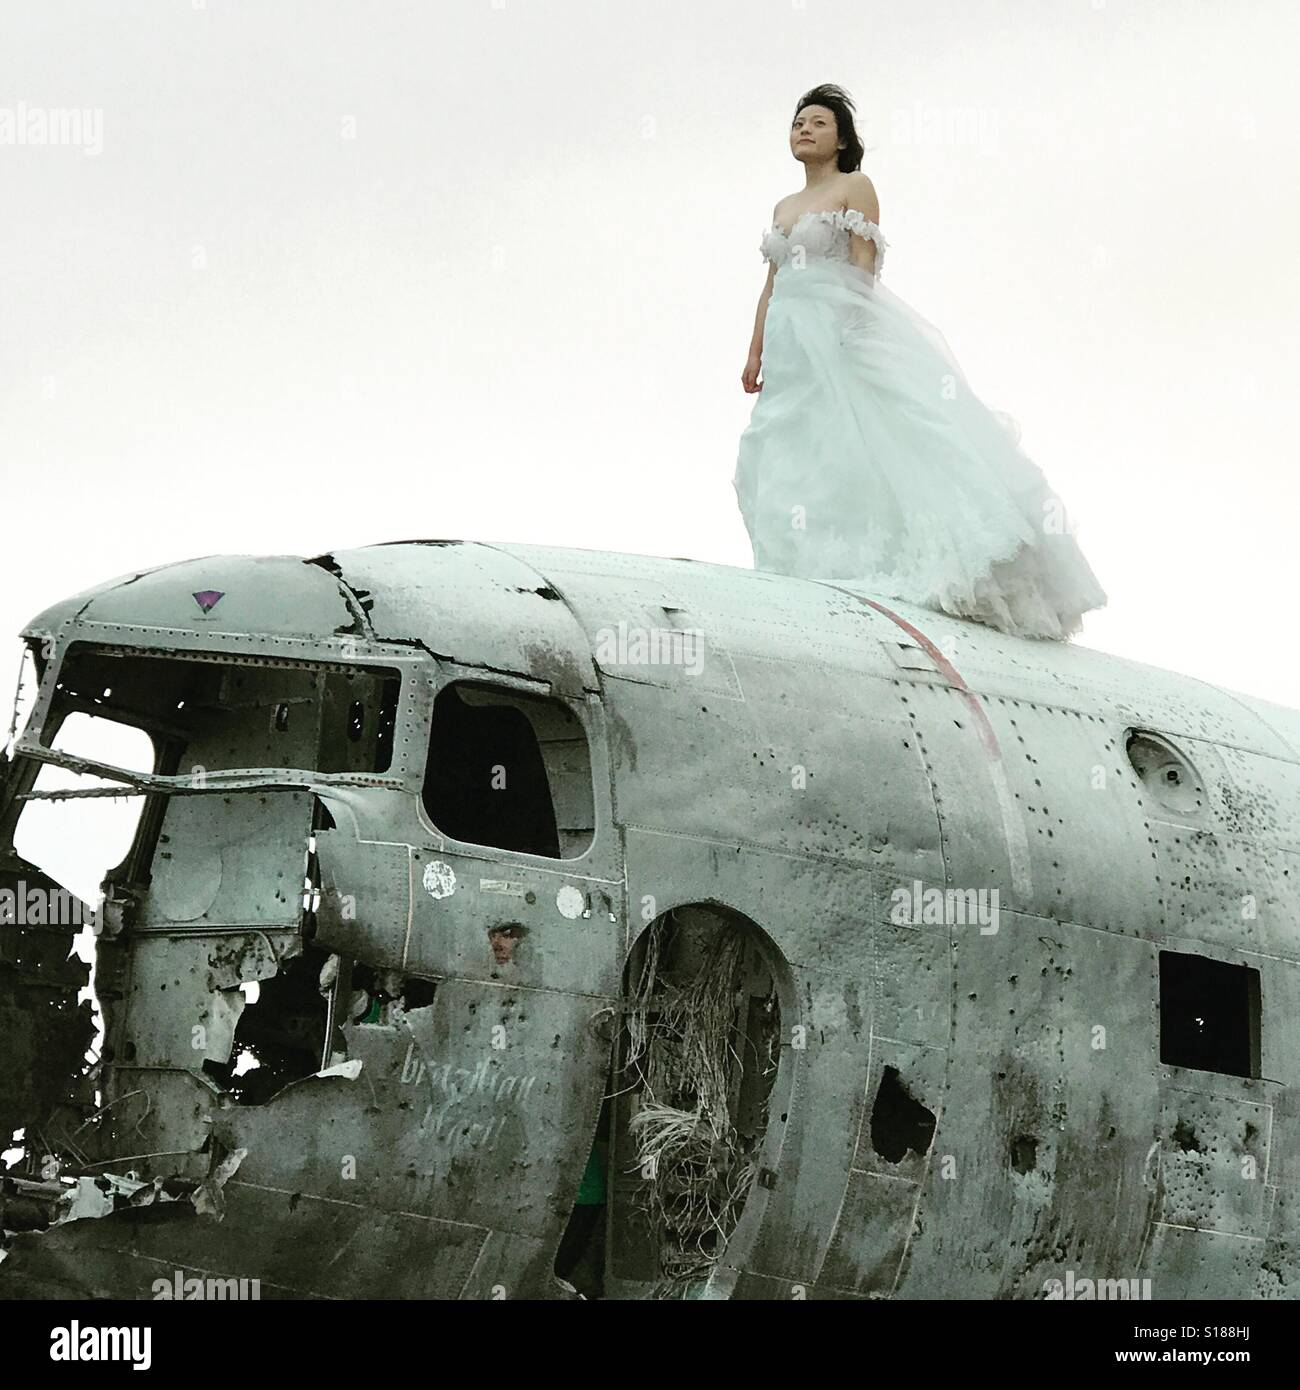 Bride on top of the plane wreck in Iceland Stock Photo